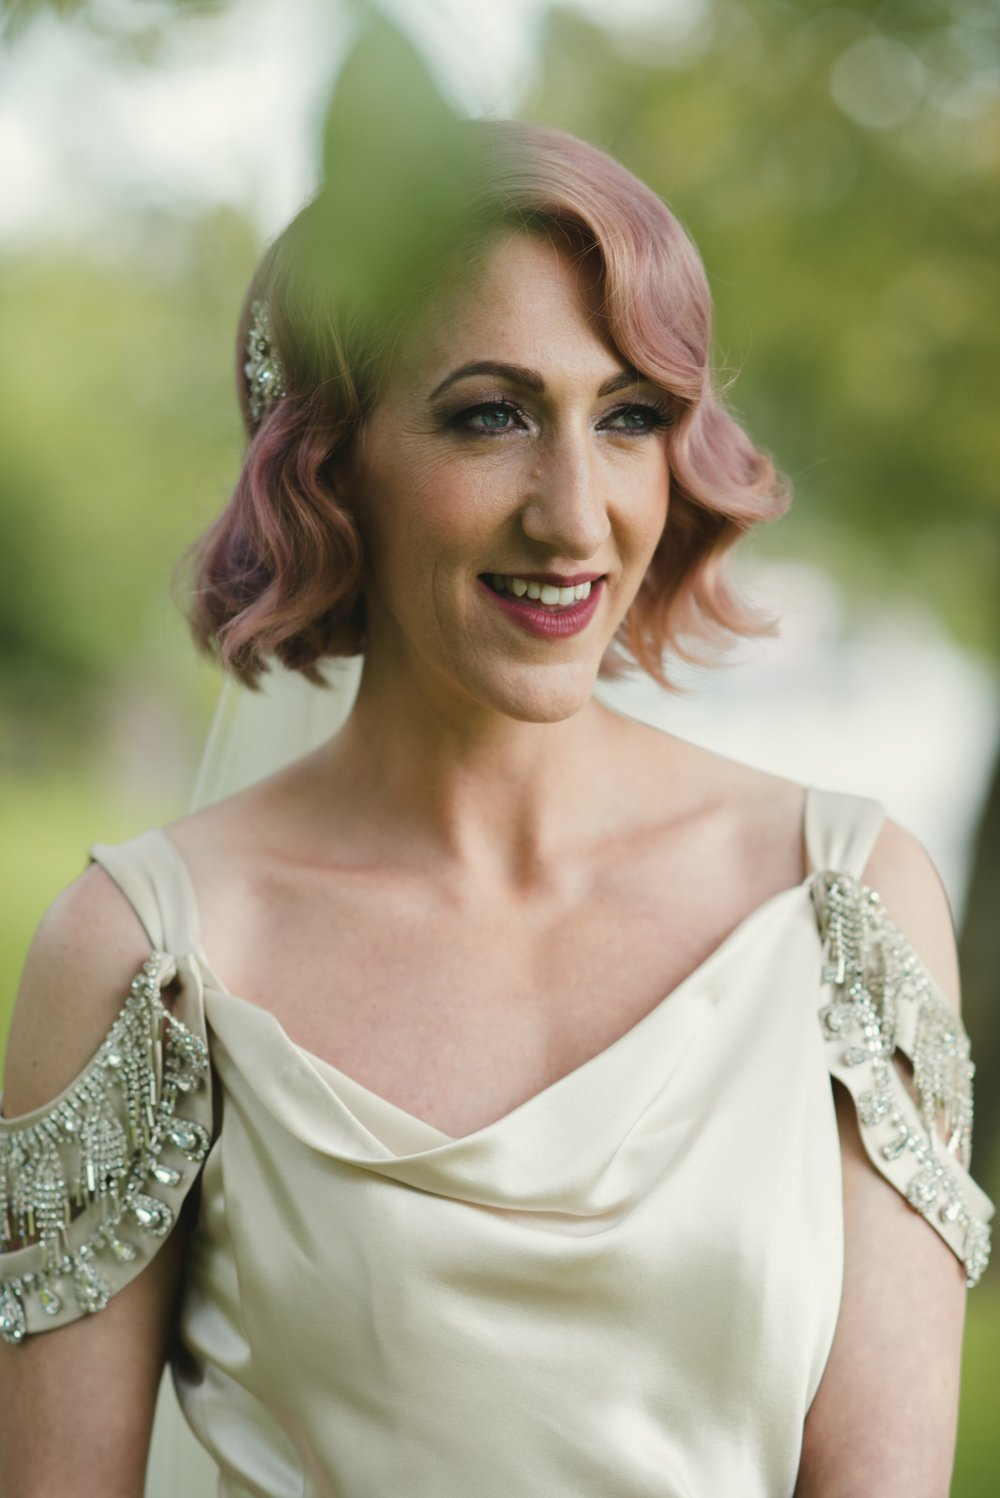 alternative bride pink hair 1930s style.jpg